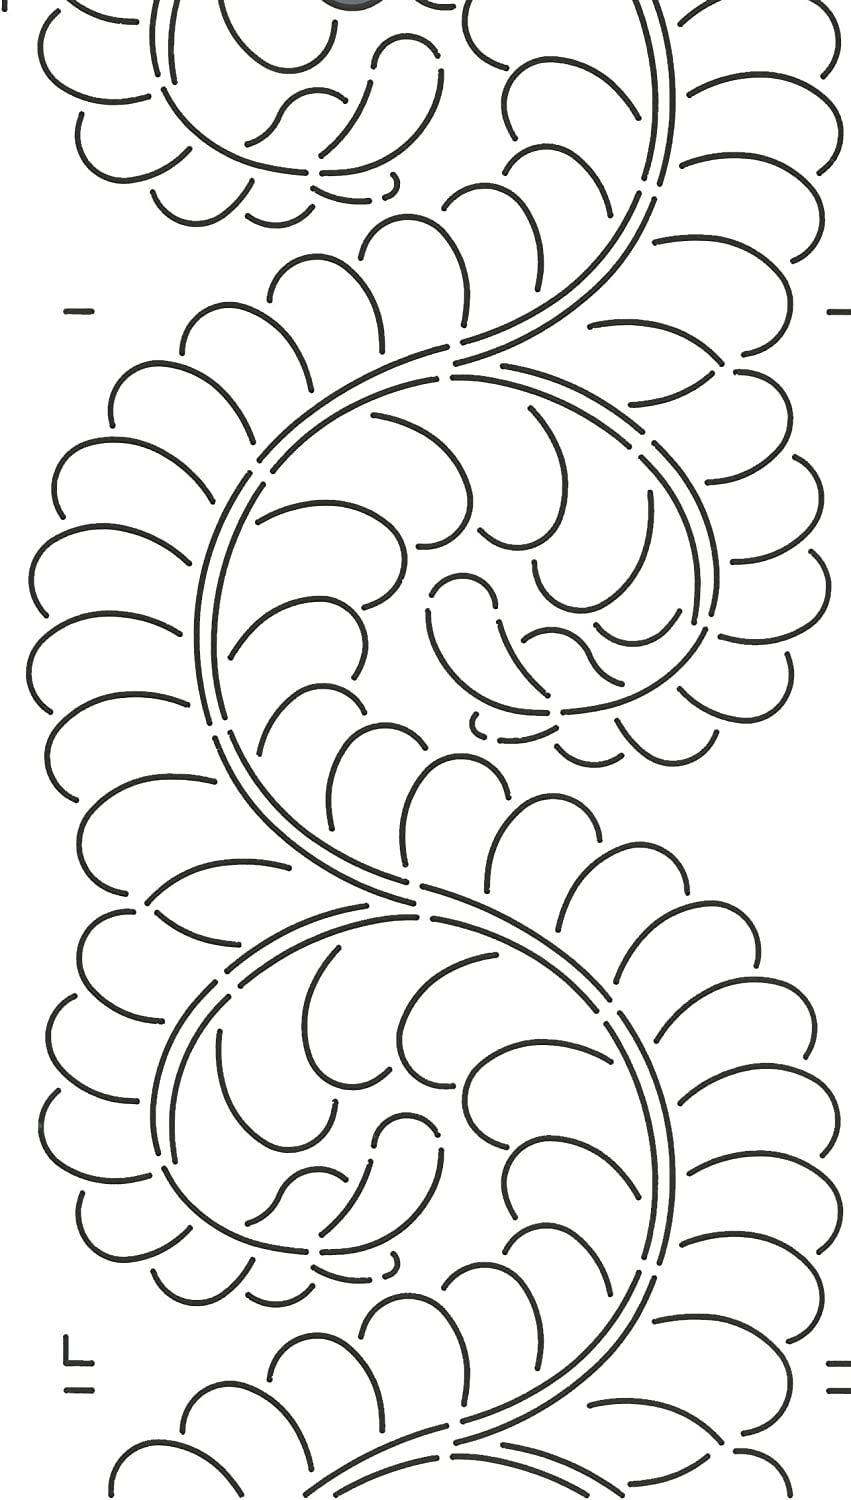 Quilting Creations Scallop Border Quilt Stencil by Quilting Creations